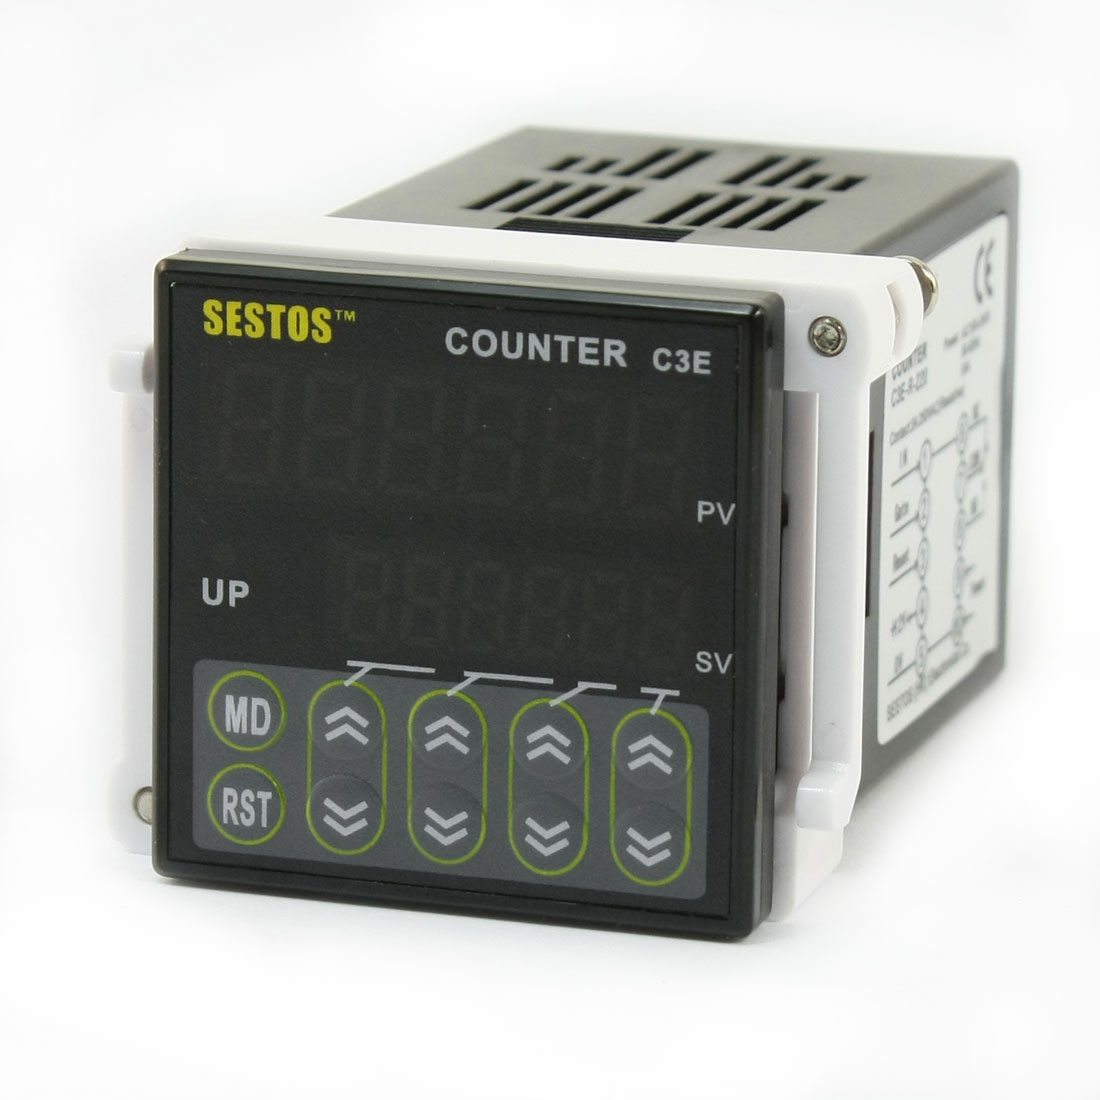 Digital Counter 0.001-99.999 6 Digitals Preset Scale Switch C3E-R-220 Relay